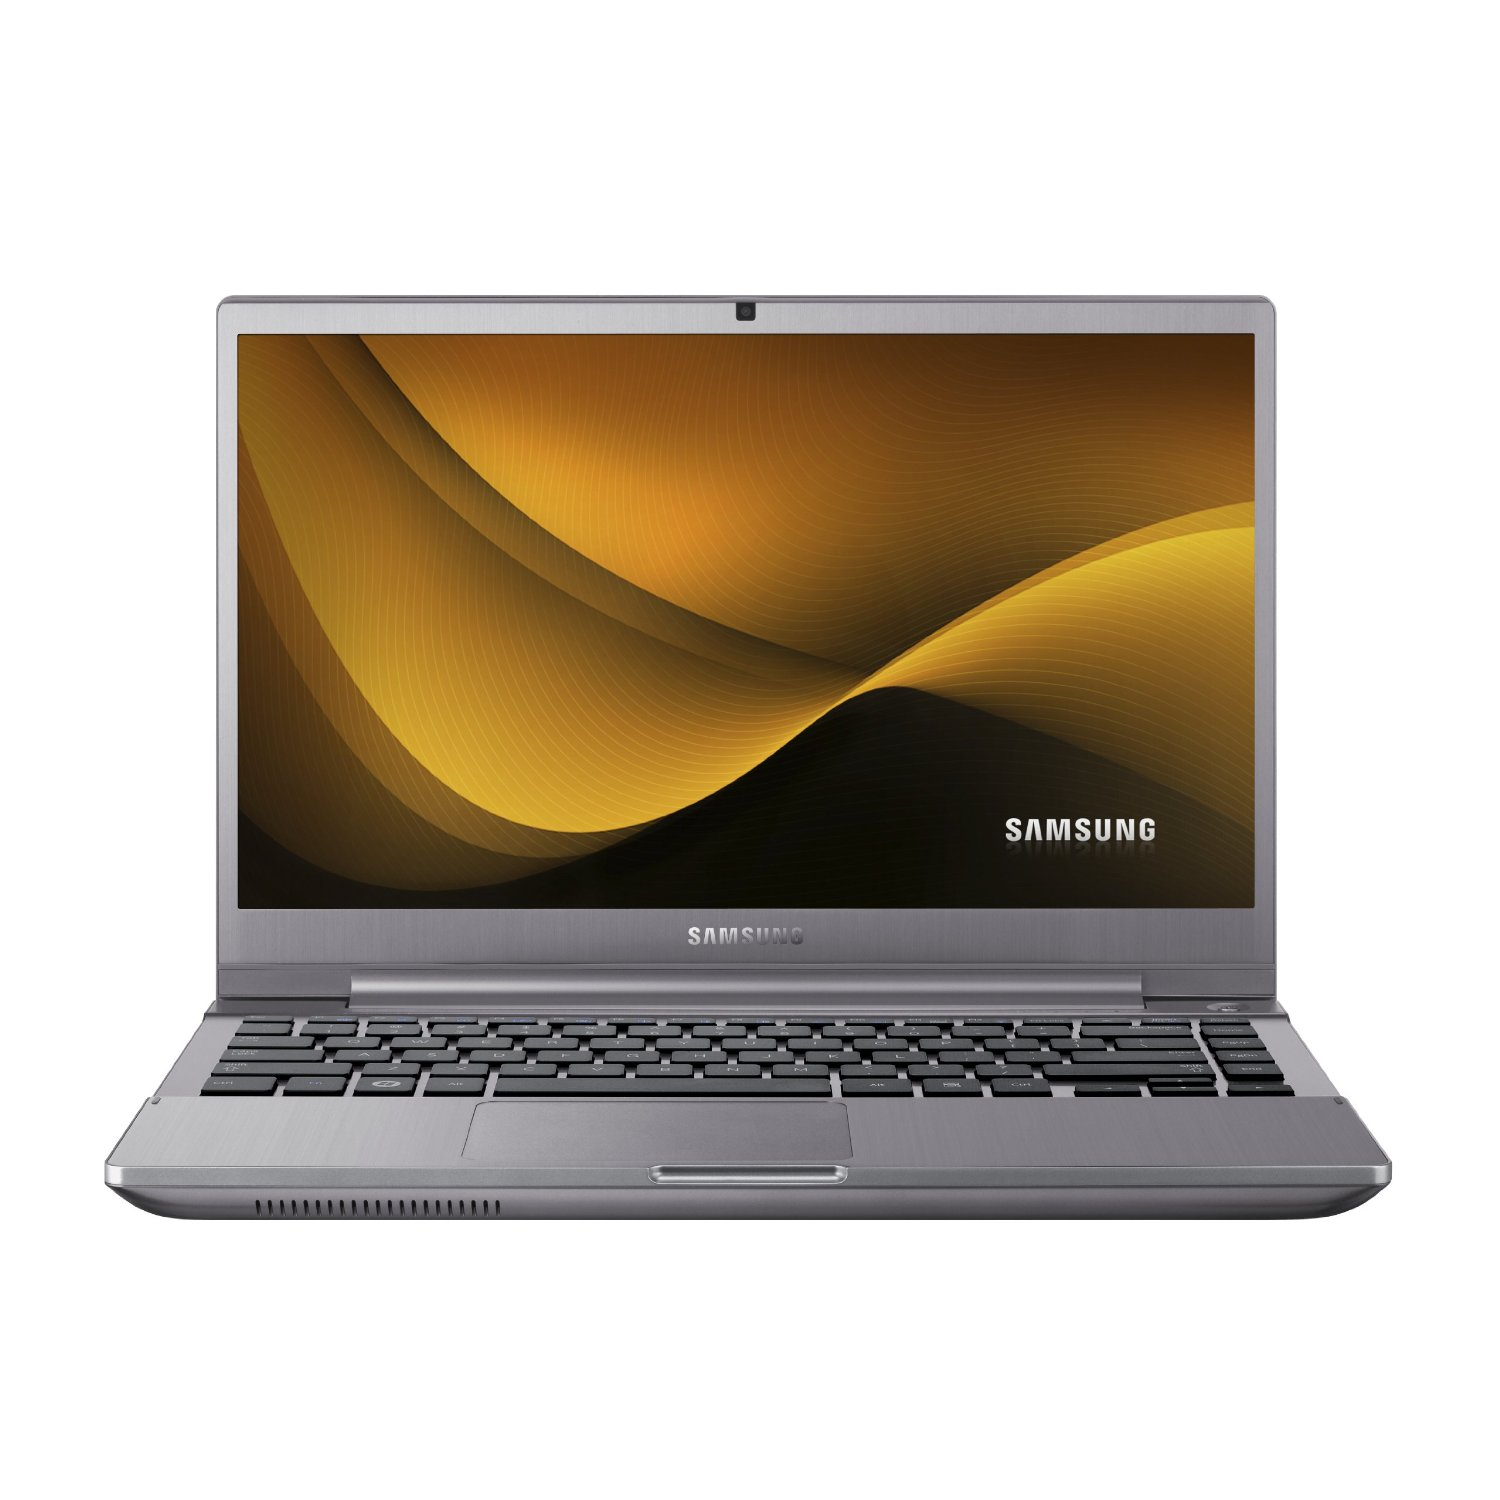 samsung series 7 np700z3a s06us with core i5 2450m dual core processor techtack lessons. Black Bedroom Furniture Sets. Home Design Ideas